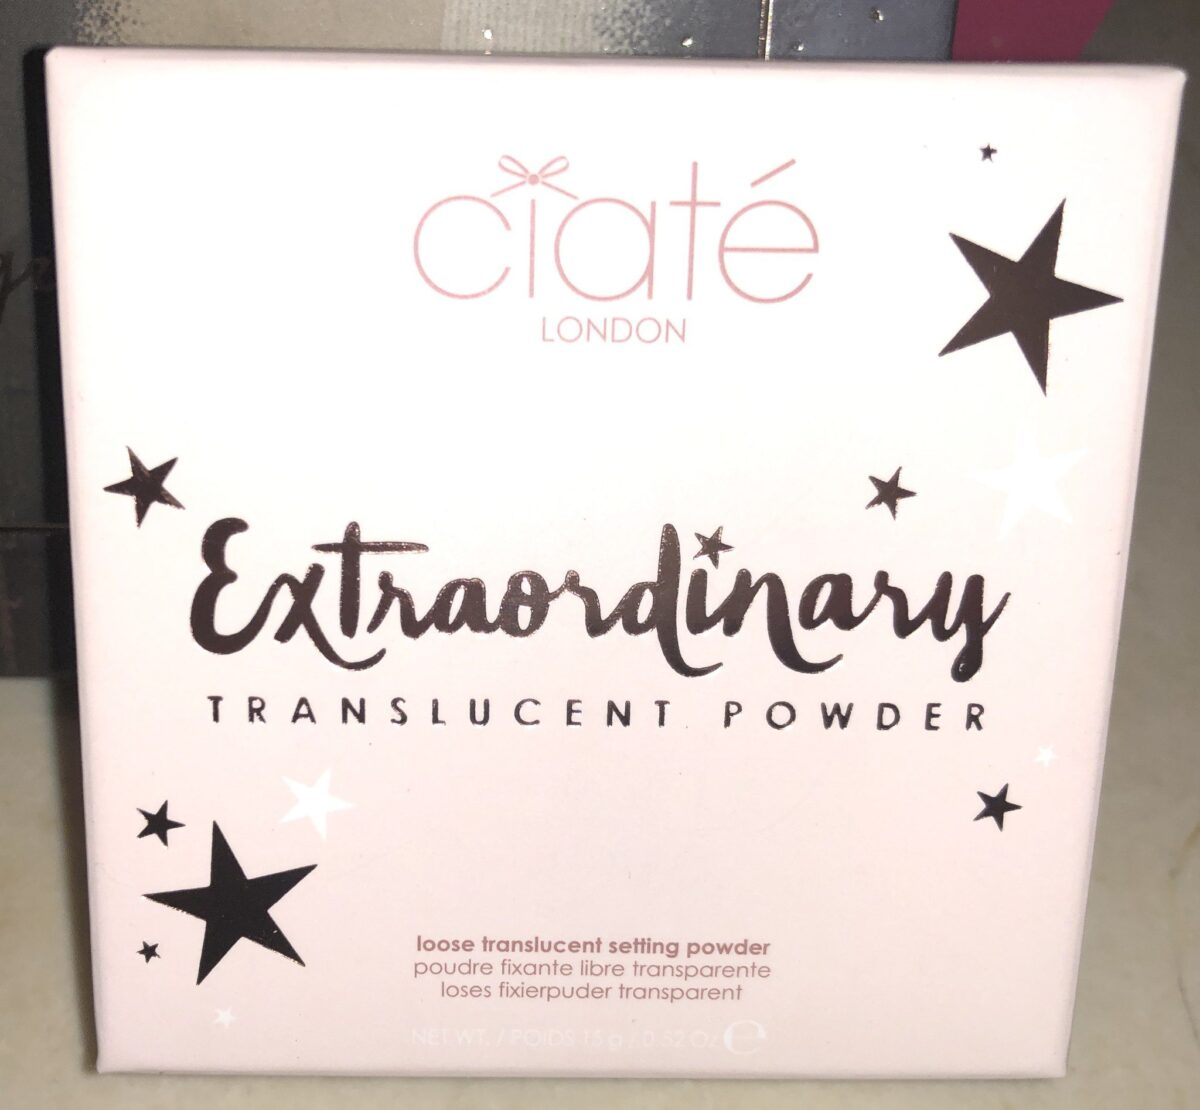 CIATE PACKAGING